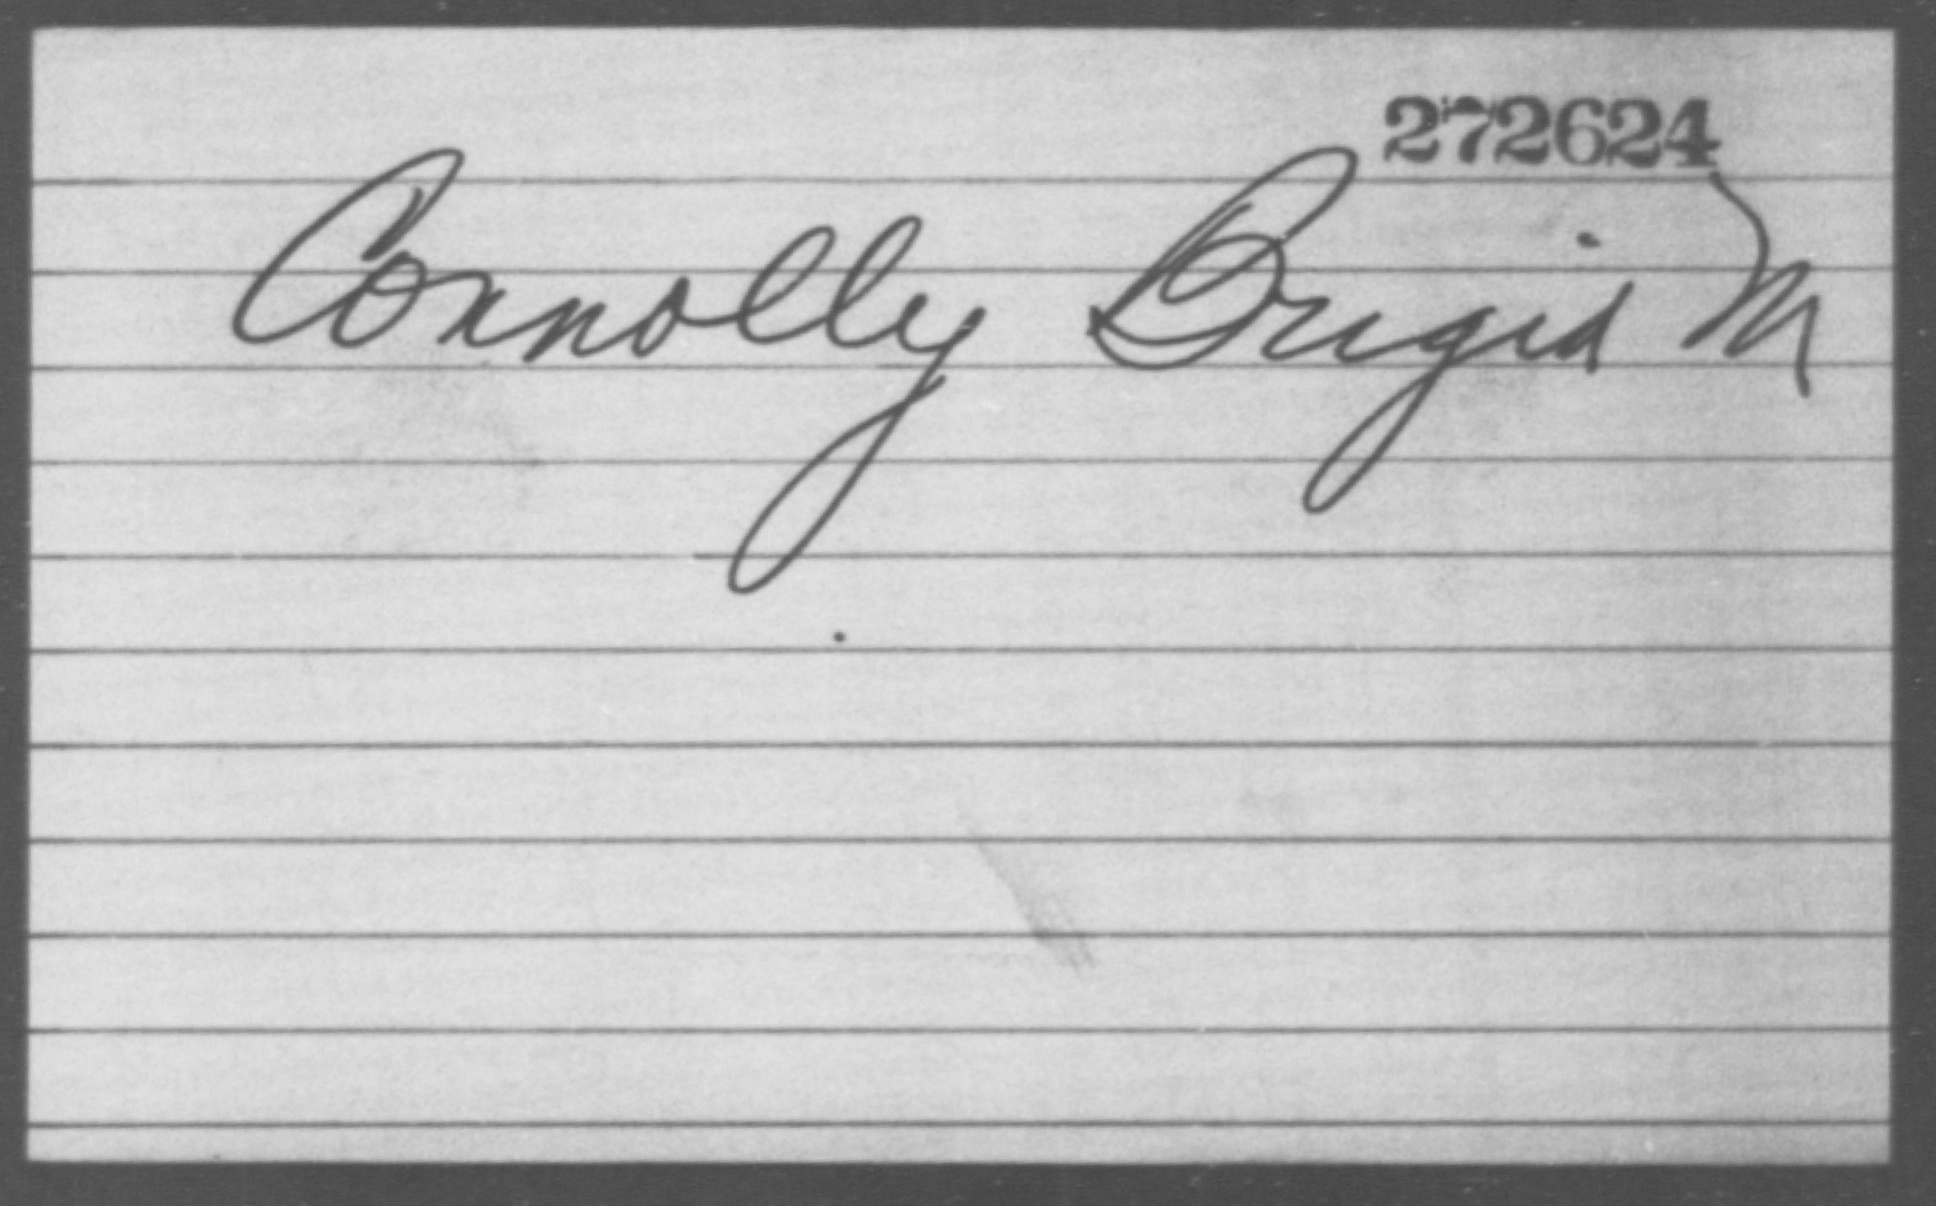 Connolly, Brigid M - Born: [BLANK], Naturalized: [BLANK]